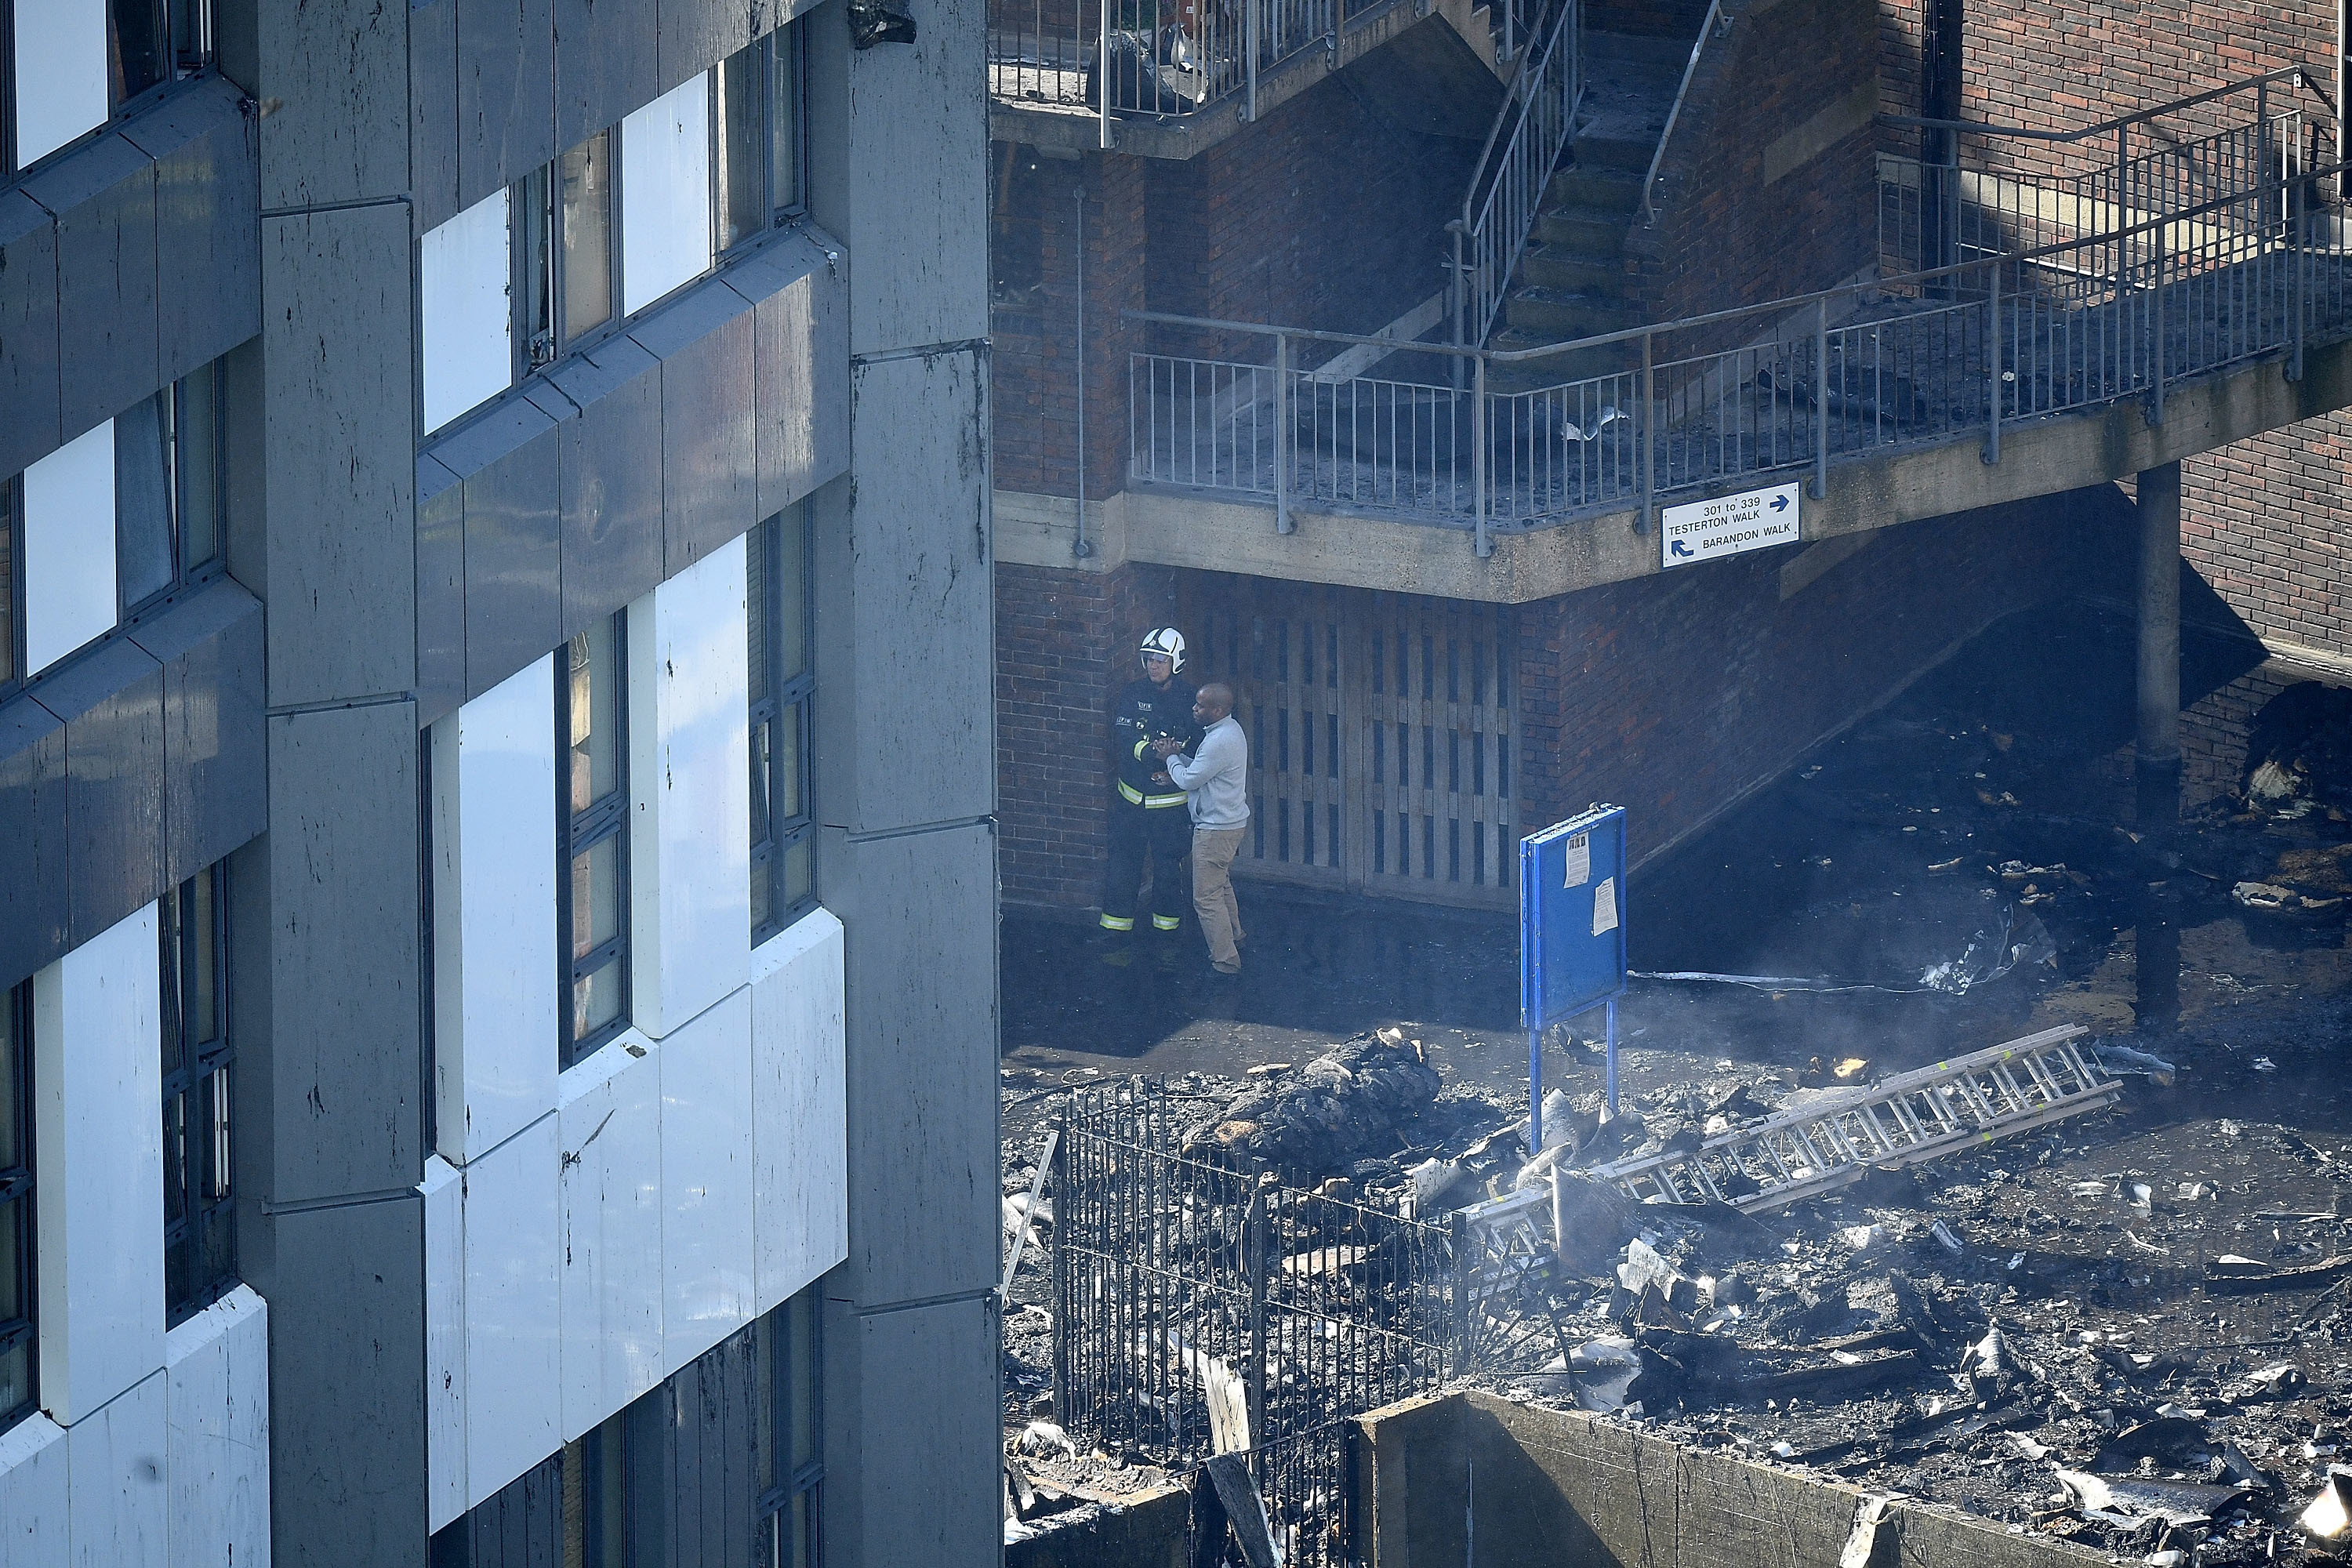 LONDON, ENGLAND - JUNE 14: A man speaks to a fire fighter after a huge fire engulfed the 24 story Grenfell Tower in Latimer Road, West London in the early hours of this morning on June 14, 2017 in London, England.  The Mayor of London, Sadiq Khan, has declared the fire a major incident as more than 200 firefighters are still tackling the blaze, while at least 50 people are receiving hospital treatment.  (Photo by Leon Neal/Getty Images)